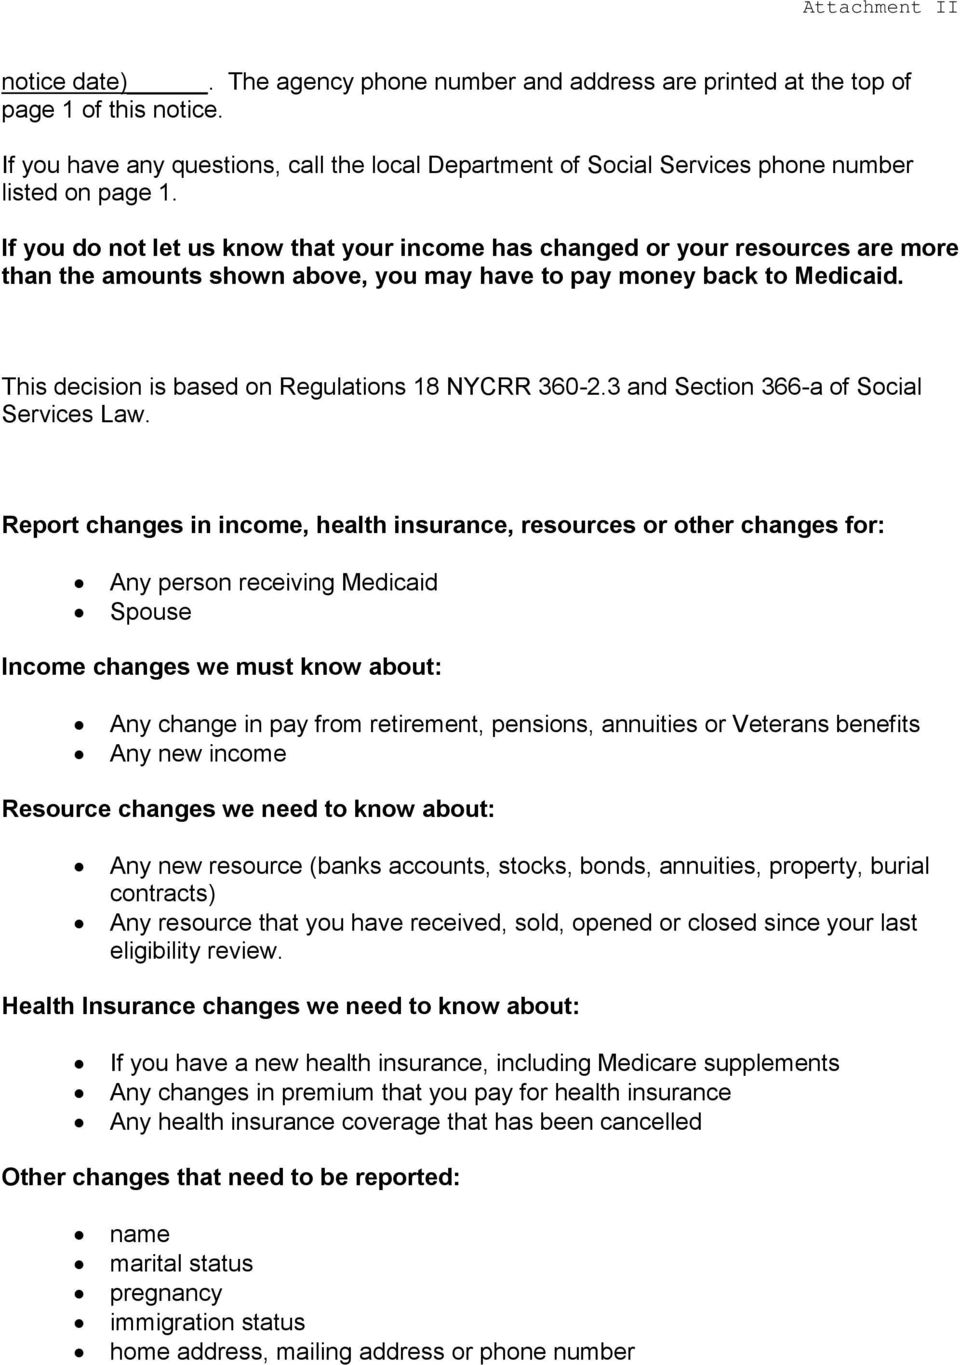 If you do not let us know that your income has changed or your resources are more than the amounts shown above, you may have to pay money back to Medicaid.